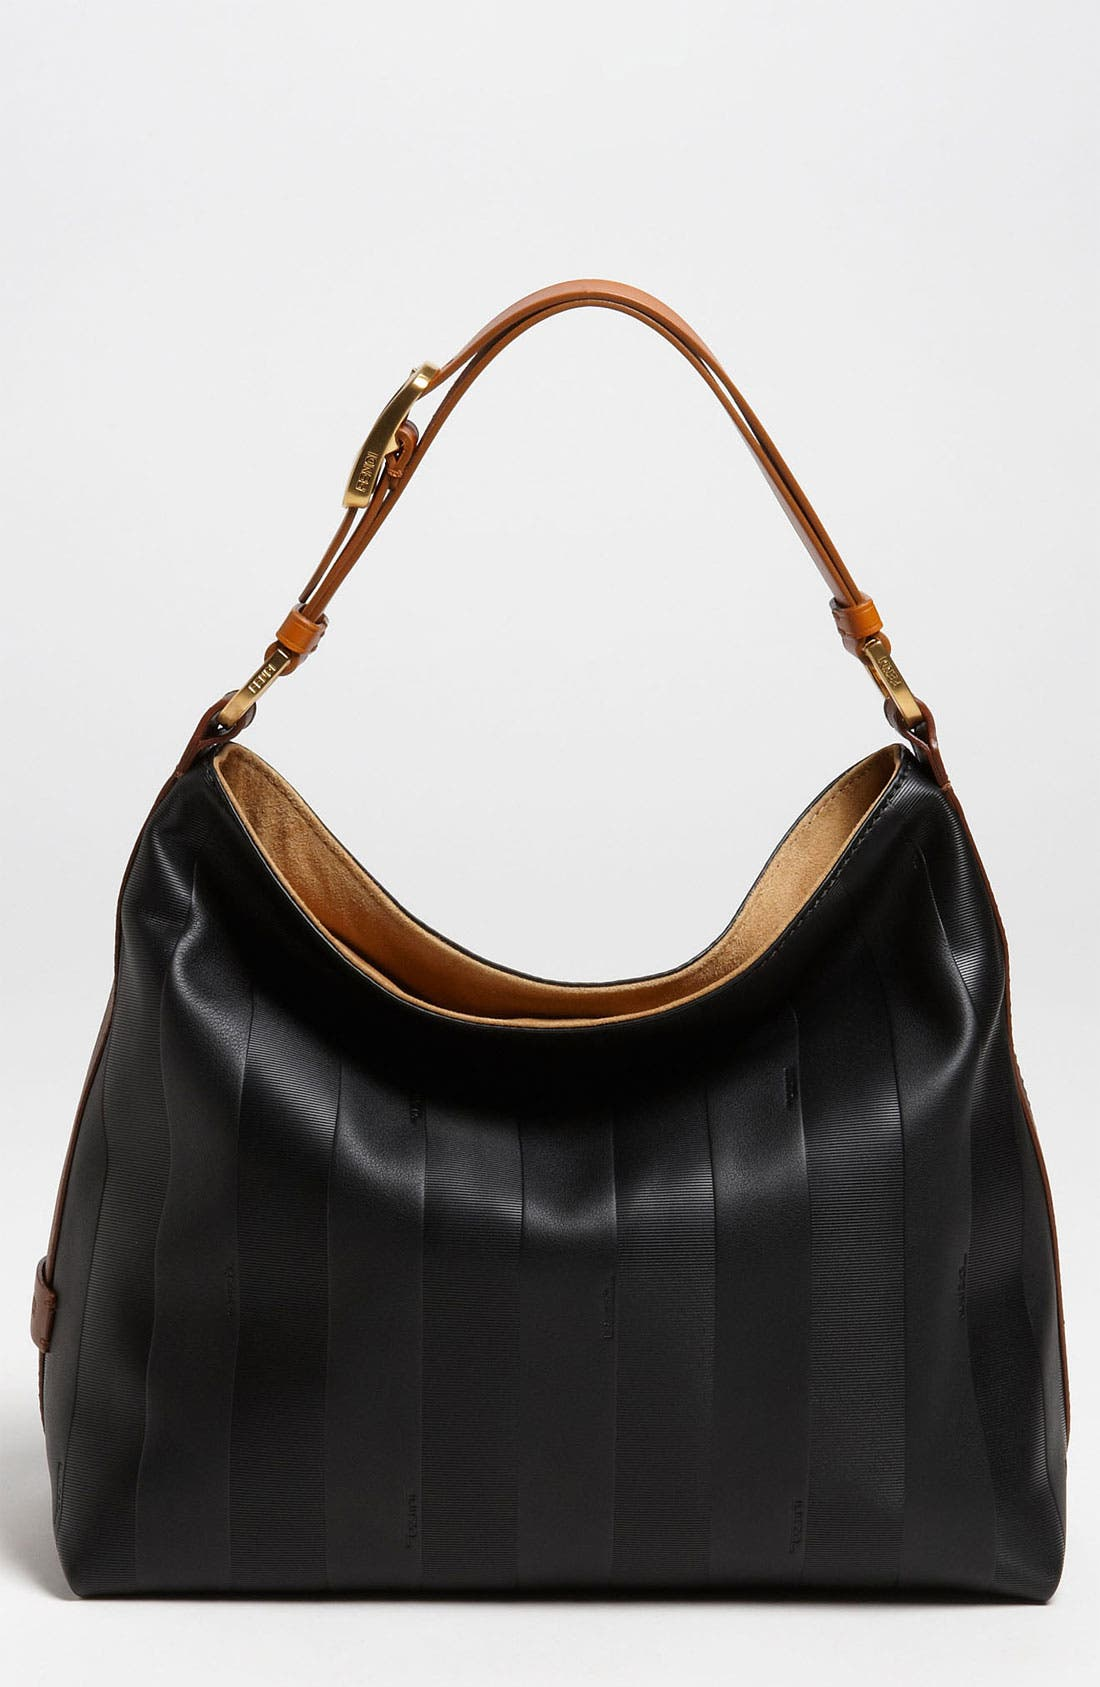 Alternate Image 1 Selected - Fendi 'Paris Pequin - Small' Leather Hobo